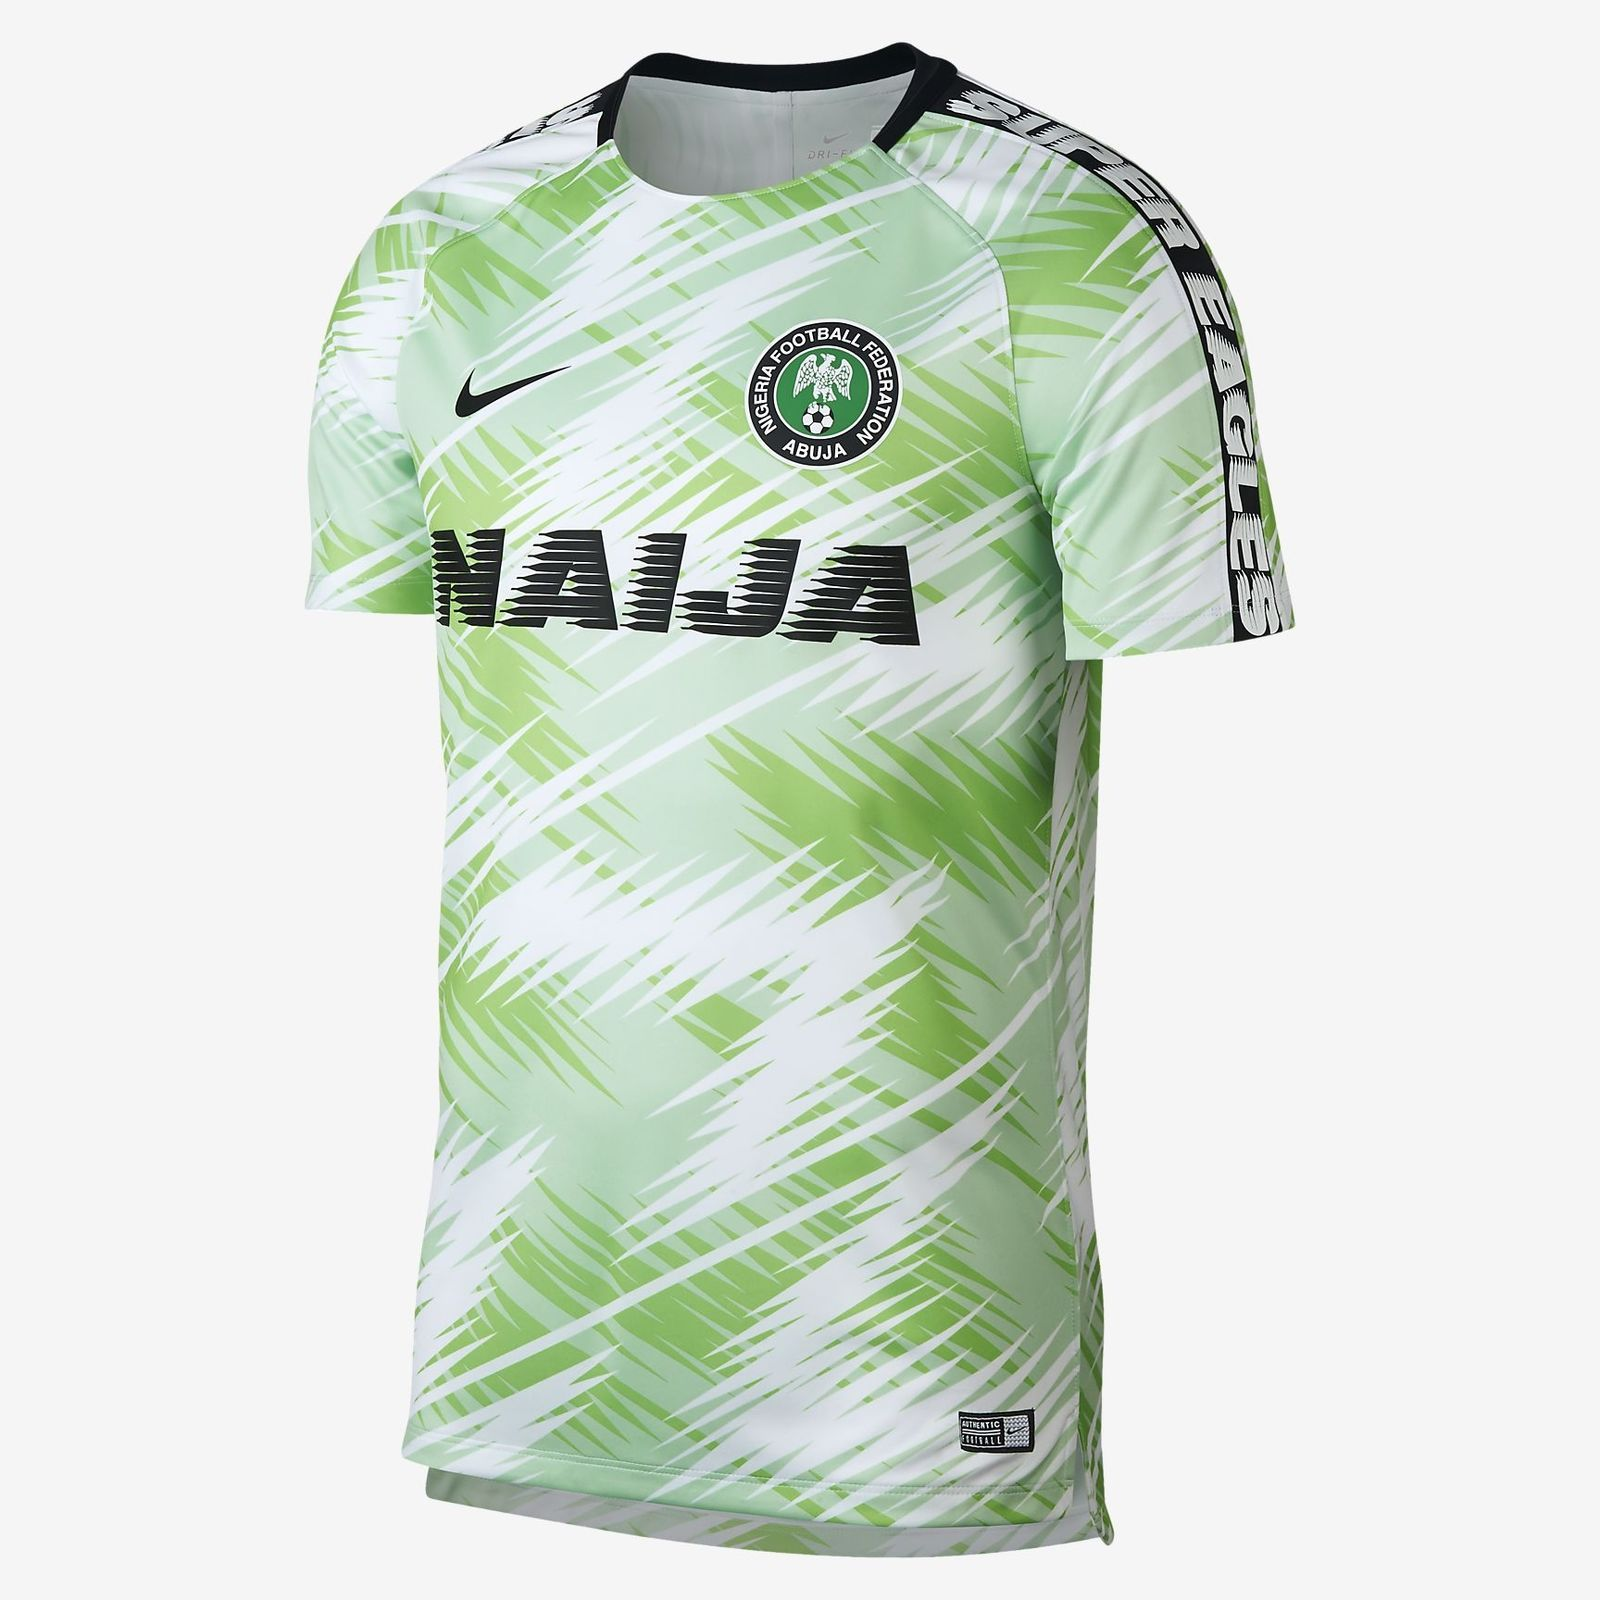 f40d3588bf7f6 2018 Nike Nigeria Dri-FIT Squad Men Top Soccer Jersey Small 893364-100 WORLD  CUP Discount Price 139.99 Free Shipping Buy it Now